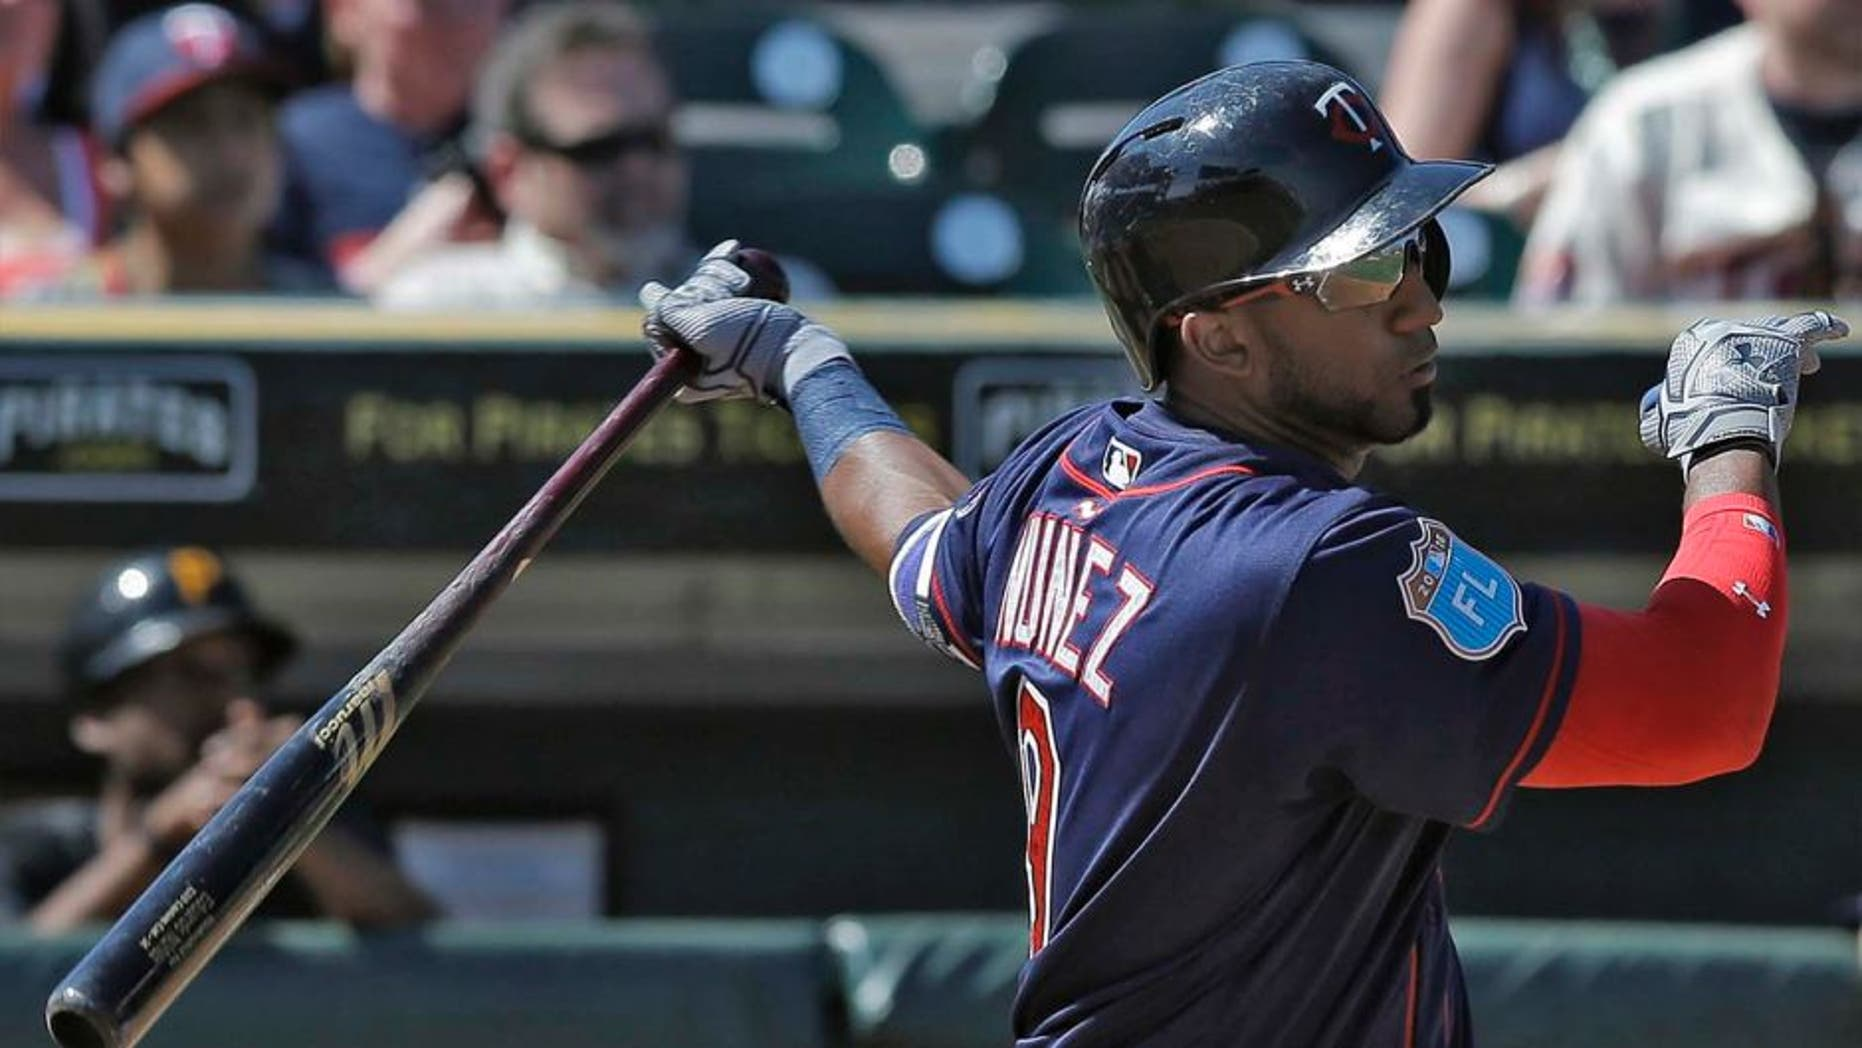 The Minnesota Twins' Eduardo Nunez watches his triple off Pittsburgh Pirates relief pitcher Neftali Feliz during the fourth inning of a spring training baseball game Friday, March 4, 2016, in Bradenton, Fla.